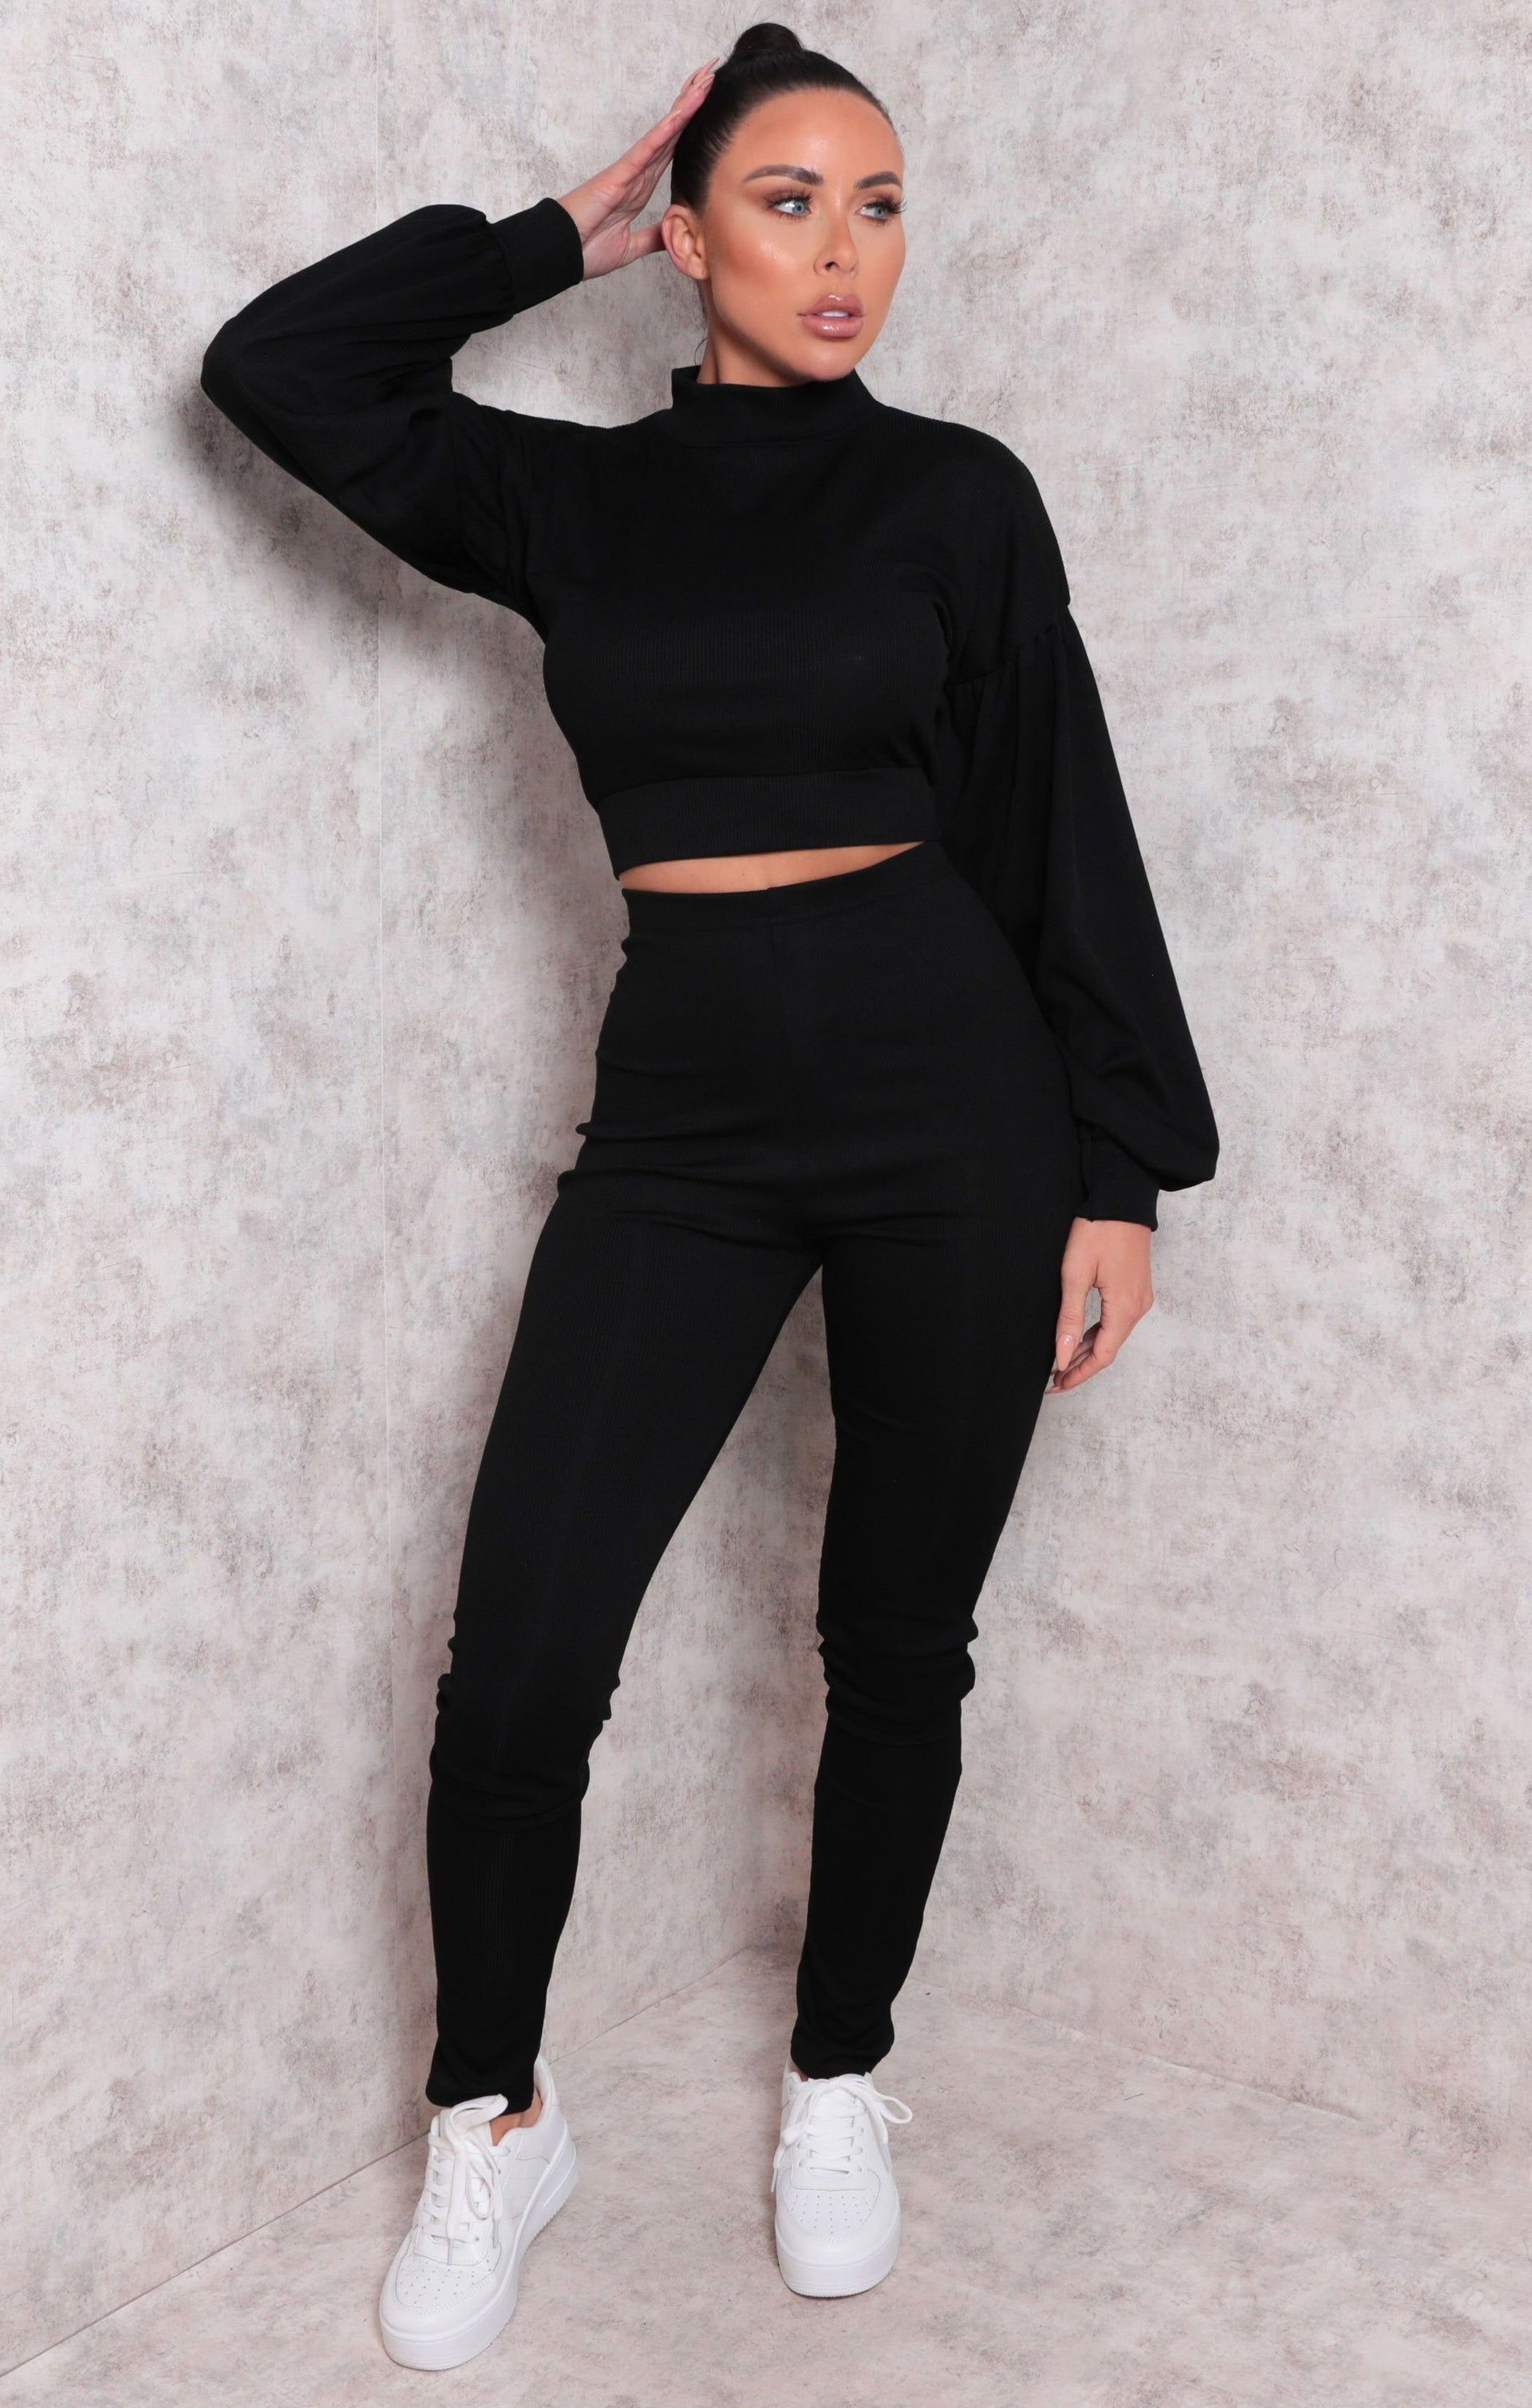 Black Ribbed Crop Top Straight Leg Loungewear Set - Aniston